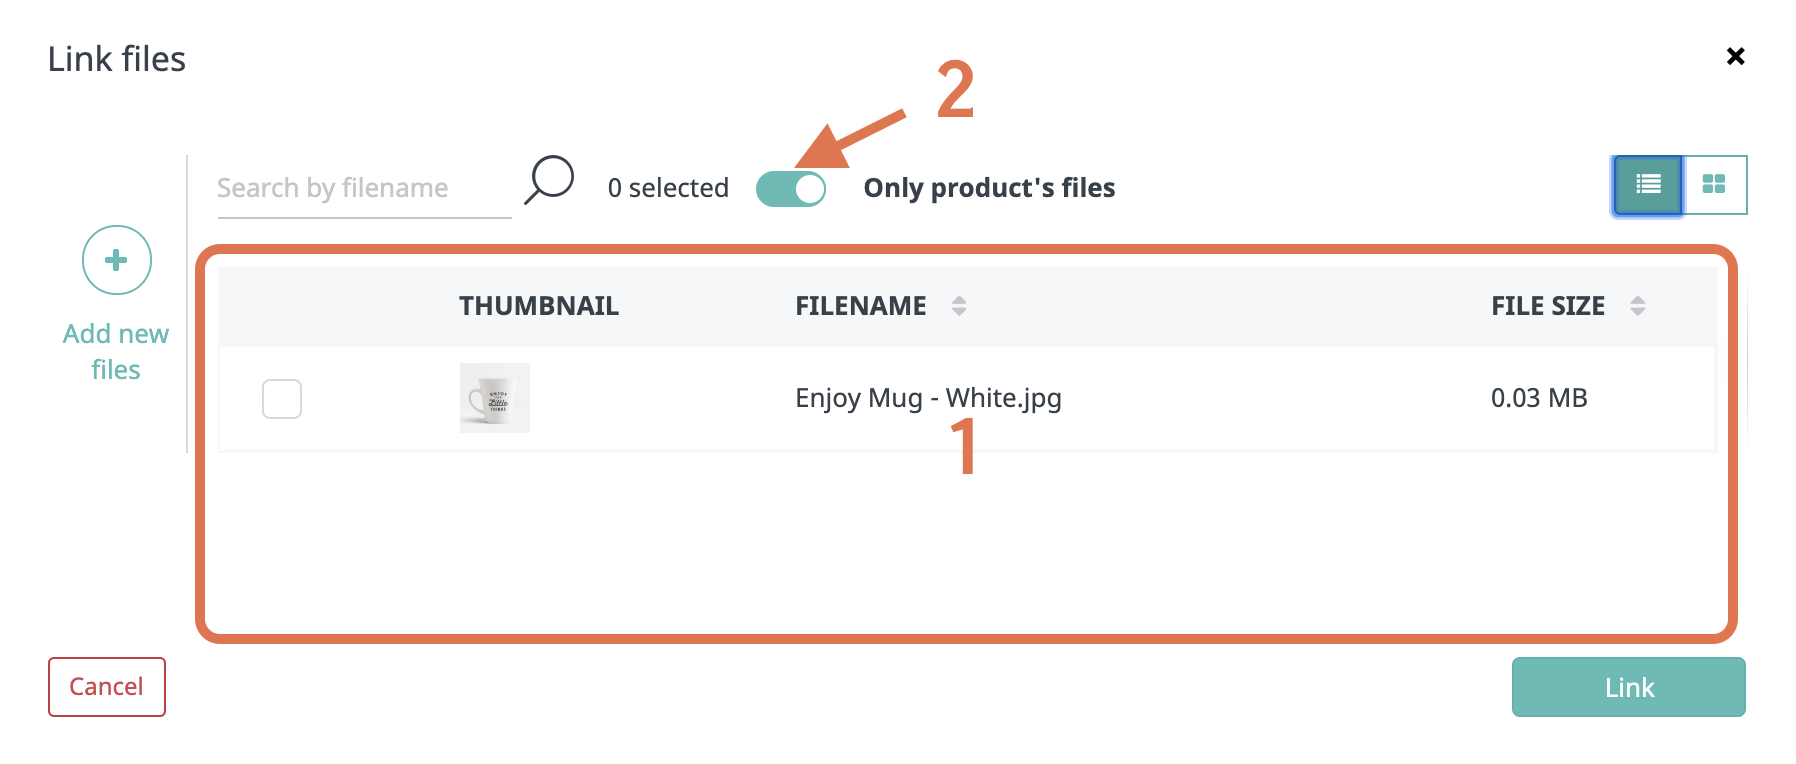 Linking files within the product or from the database-1